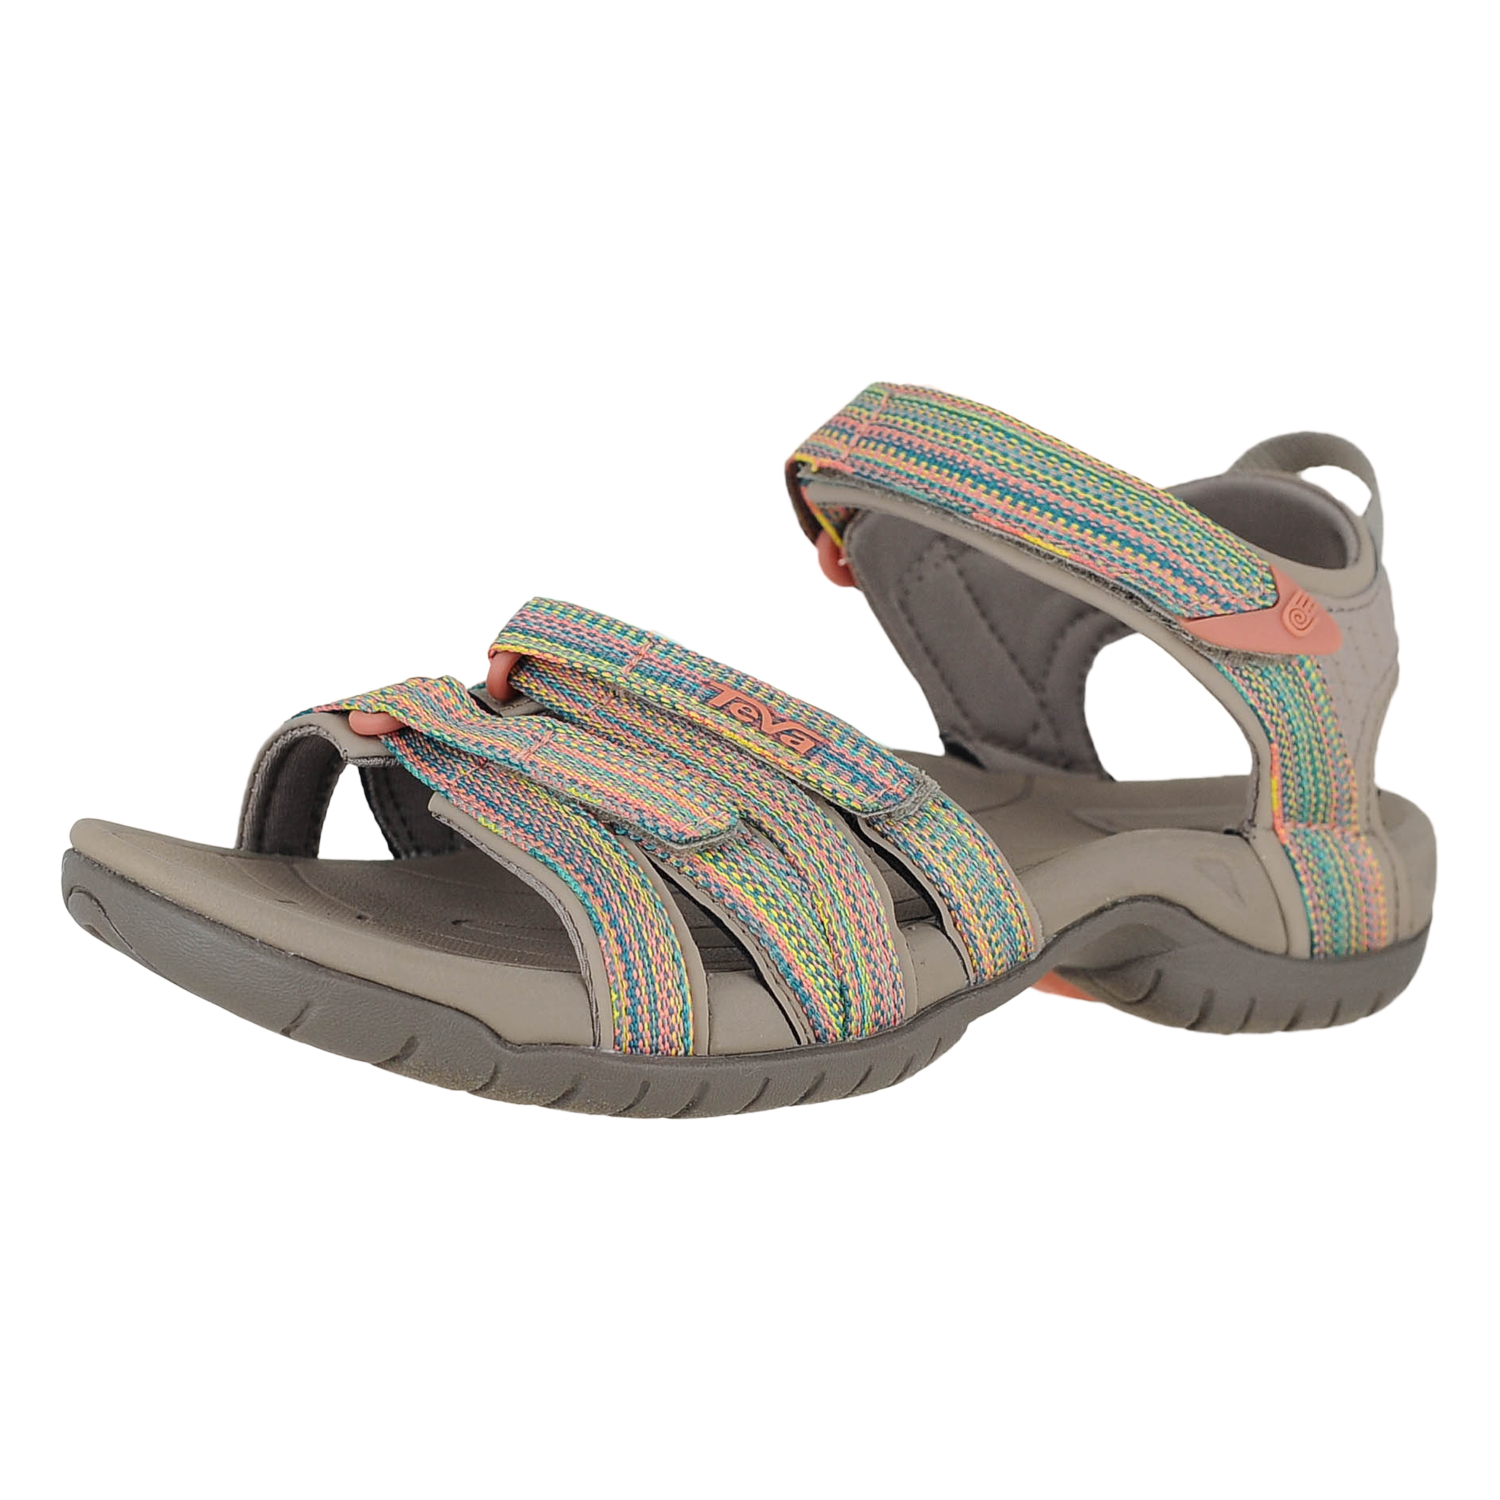 b58353469fe Details about Teva Tirra 4266 Taupe Multi Womens Sport Sandals Size 8M